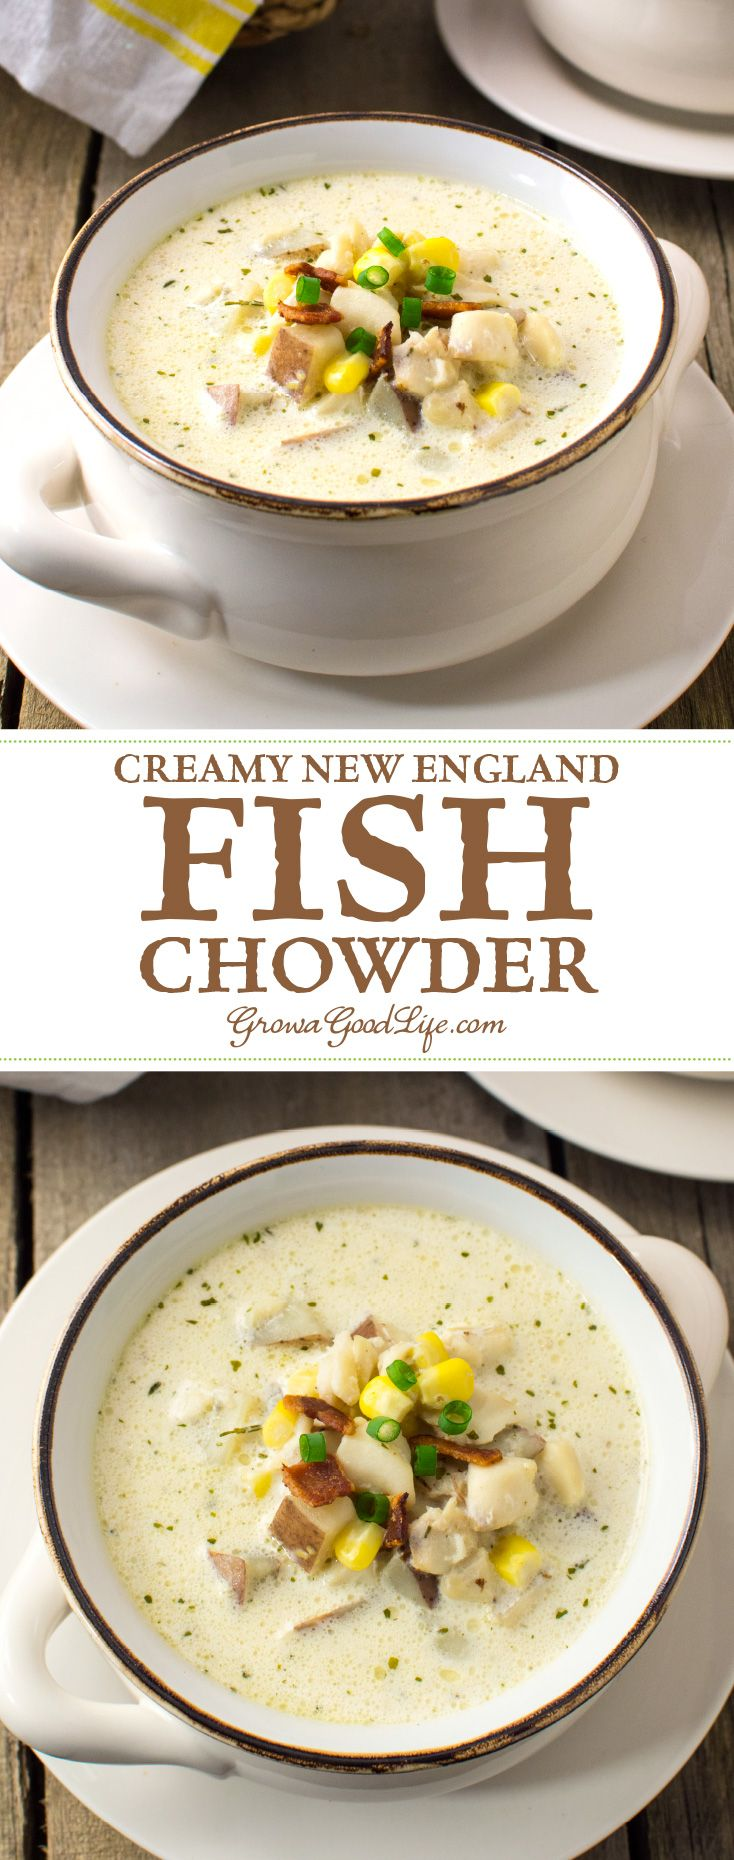 This classic creamy New England fish chowder uses simple ingredients and tastes like restaurant quality.